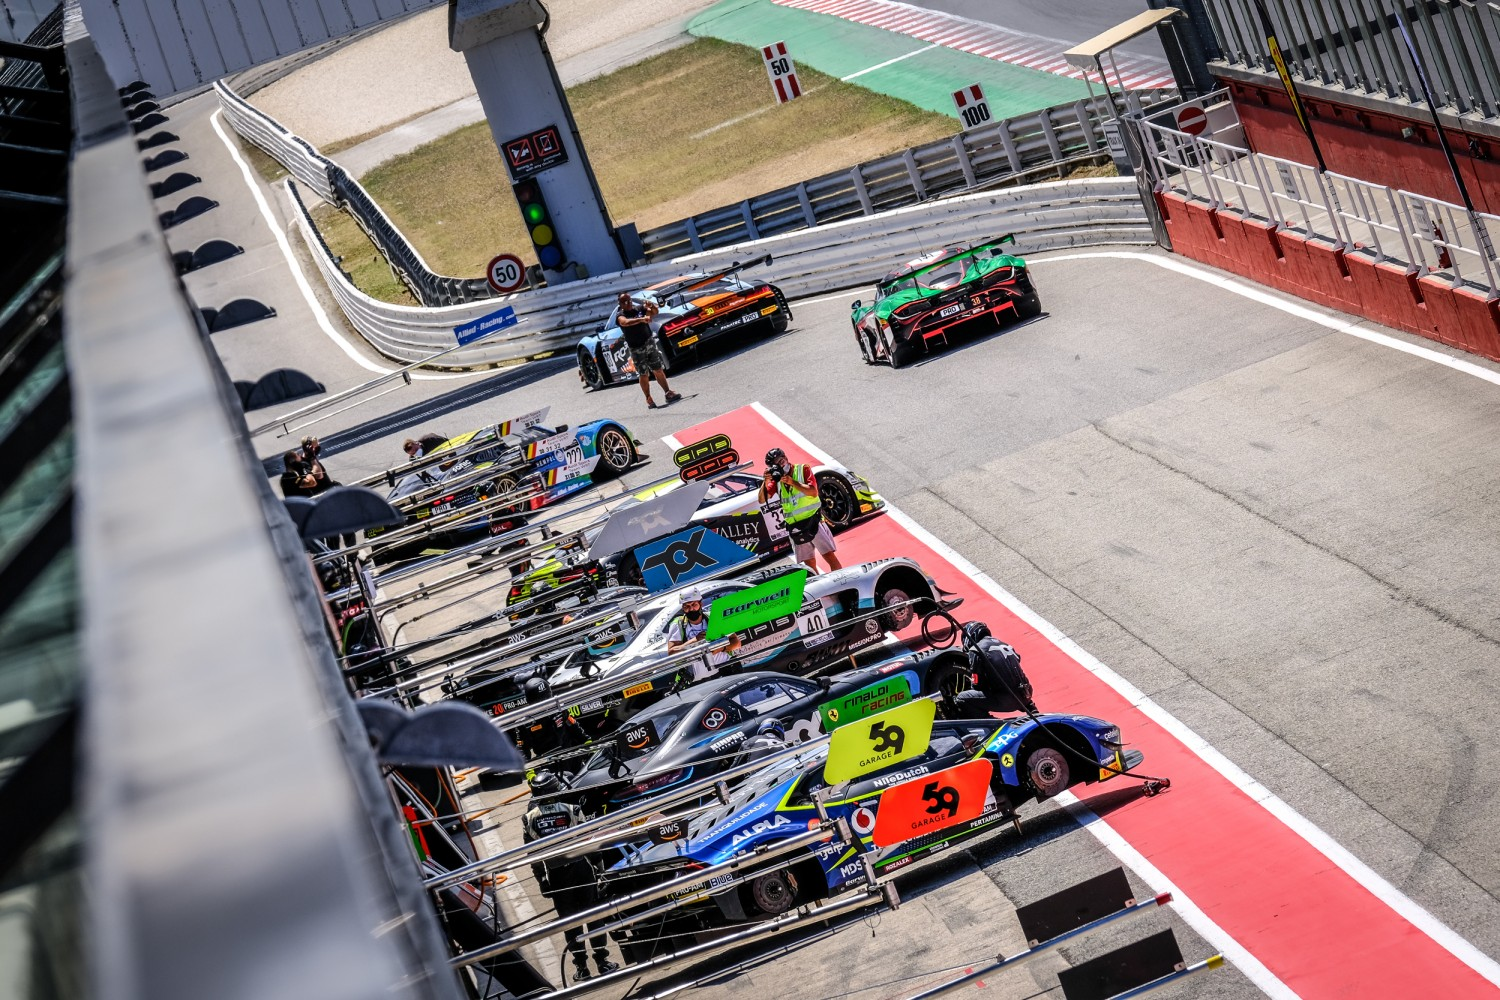 Preparations for Misano complete following extensive Thursday test